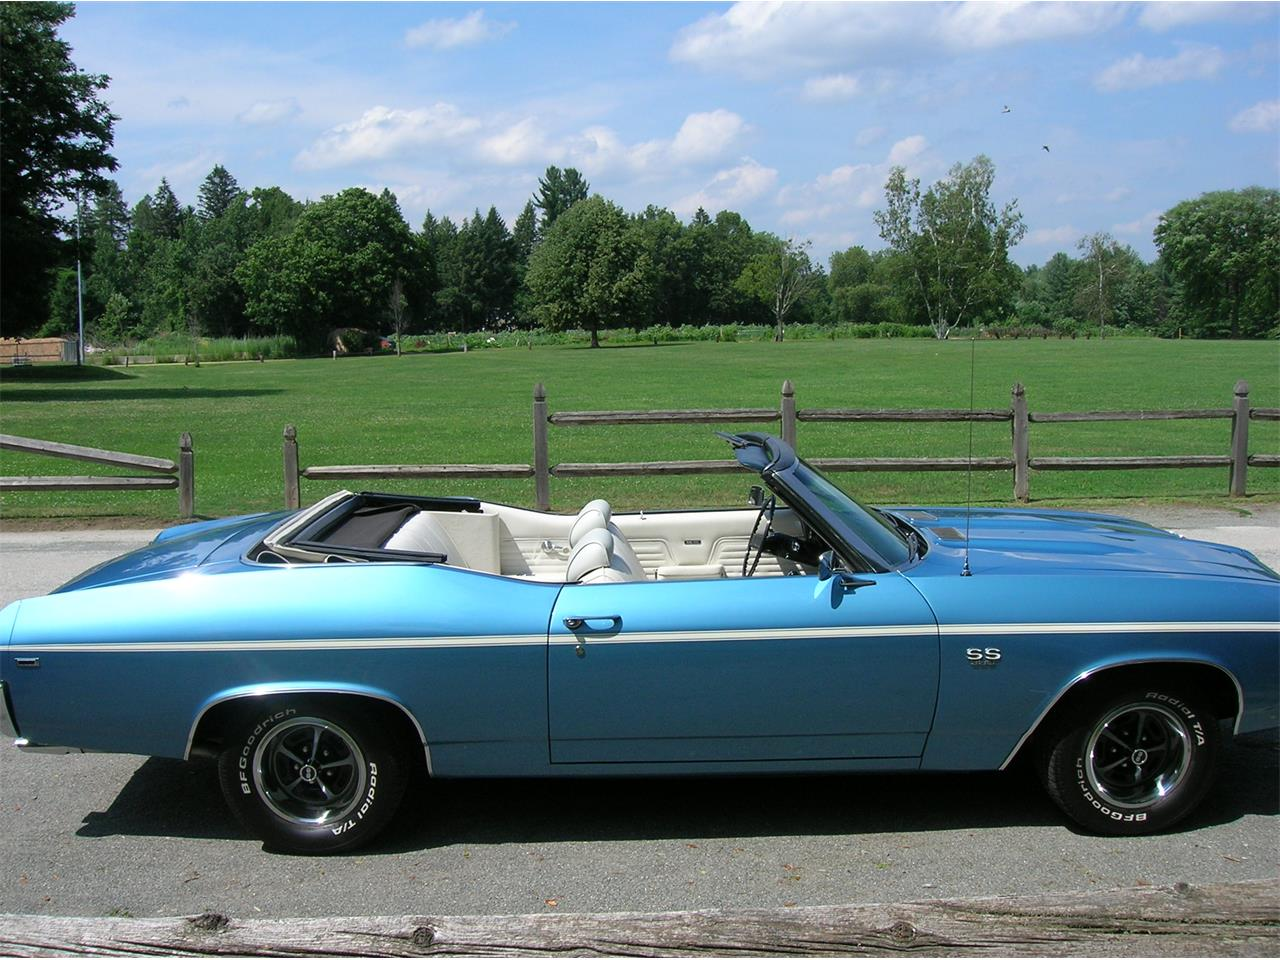 For Sale: 1969 Chevrolet Chevelle SS in Nashua, New Hampshire